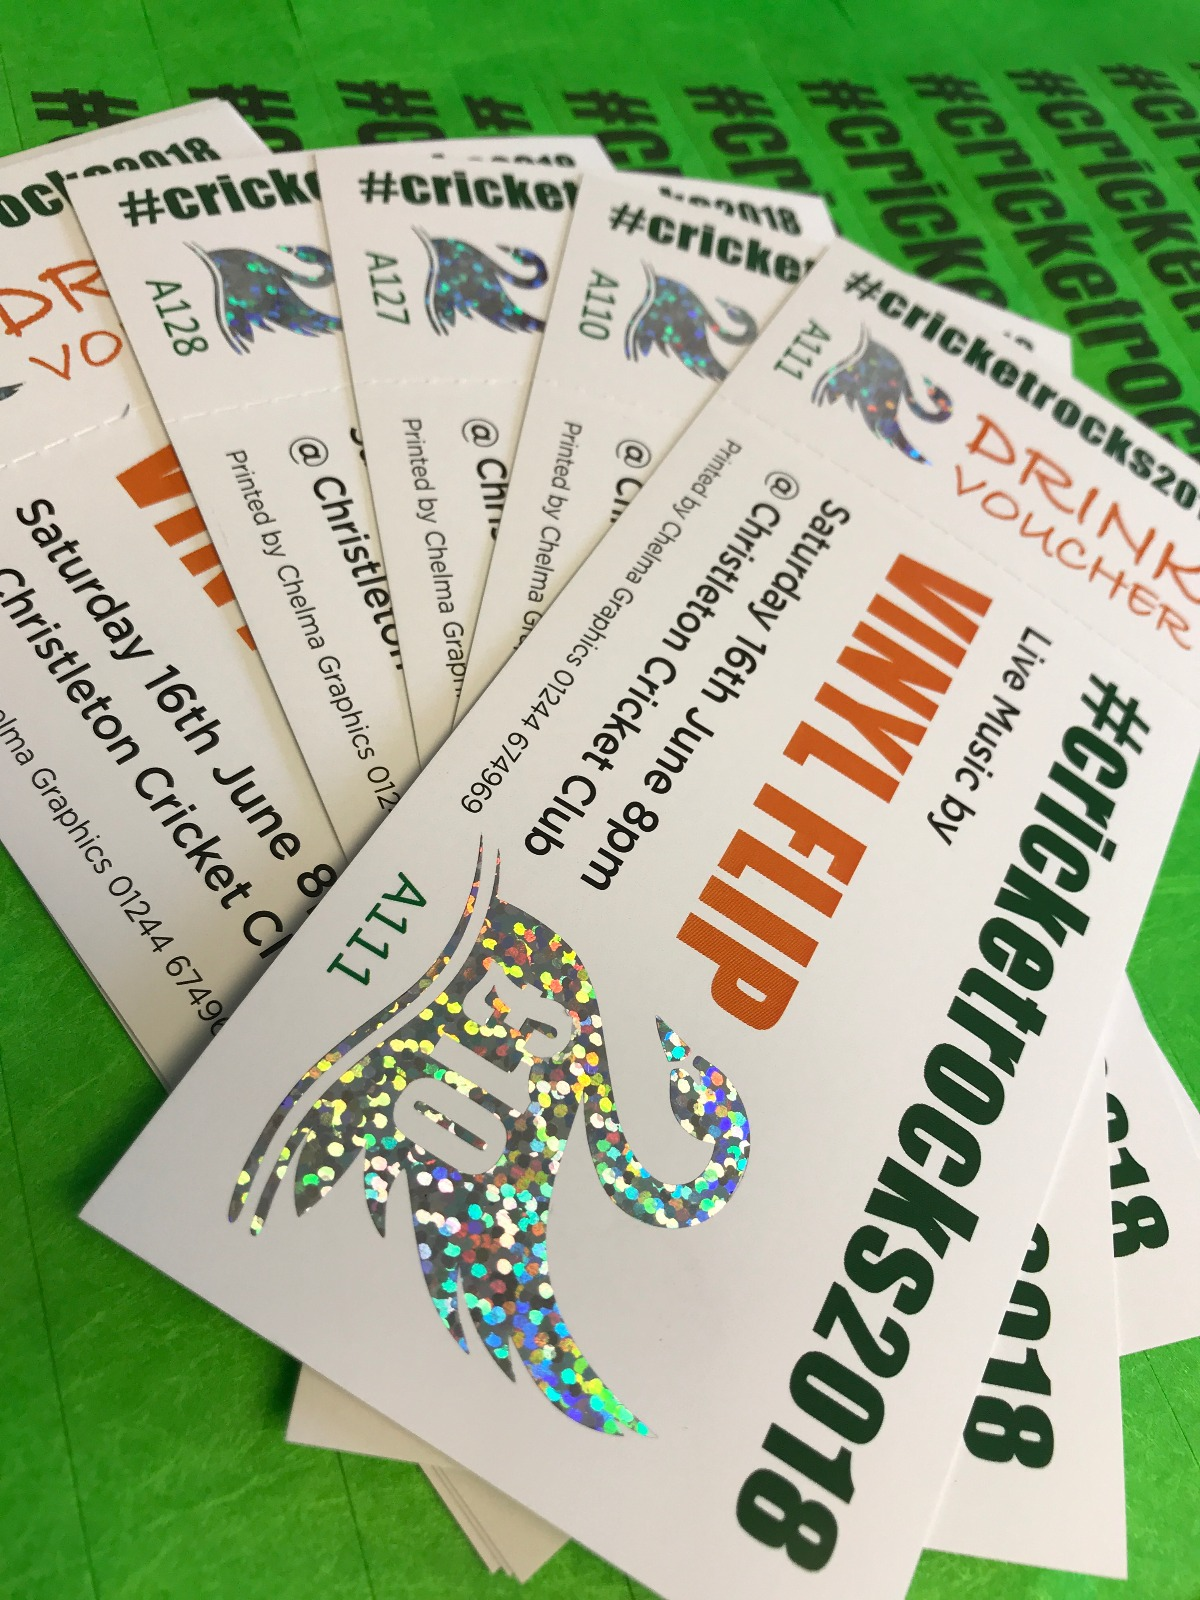 Cricket Tickets with some glittery flair, printed for Christleton Cricket Club